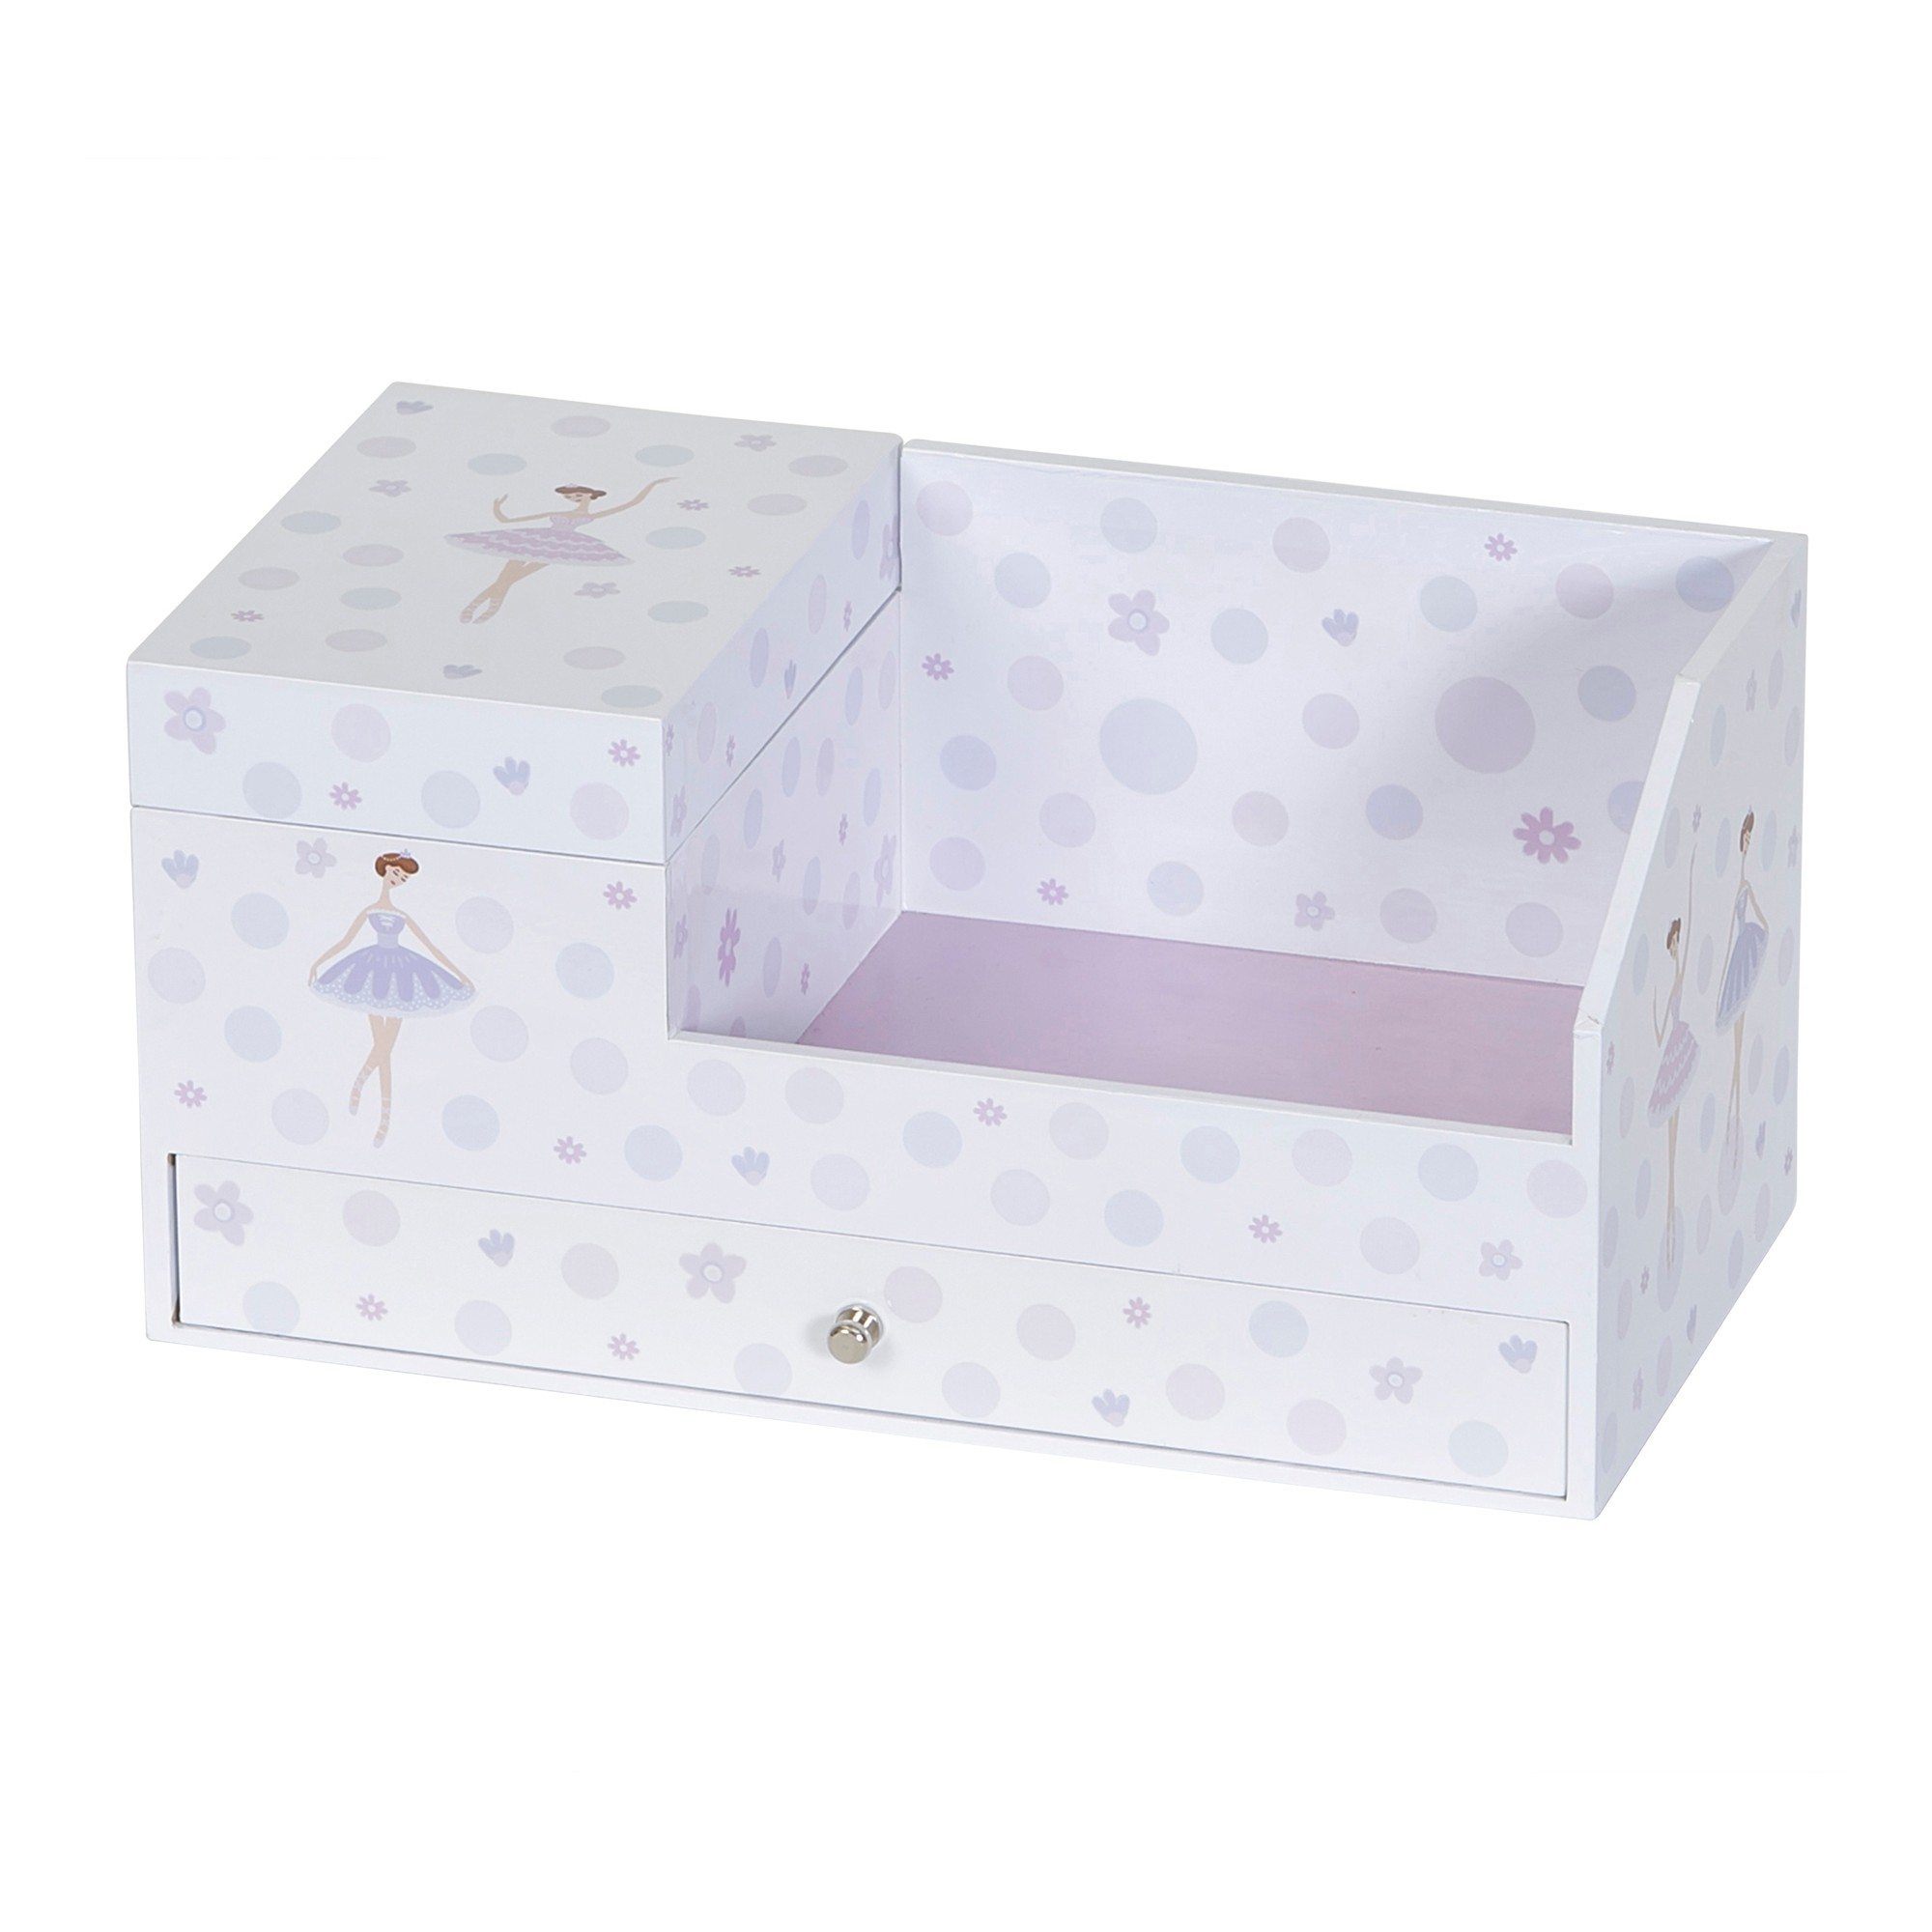 Mele Joss Girls Musical Ballerina Jewelry Box Organizer White